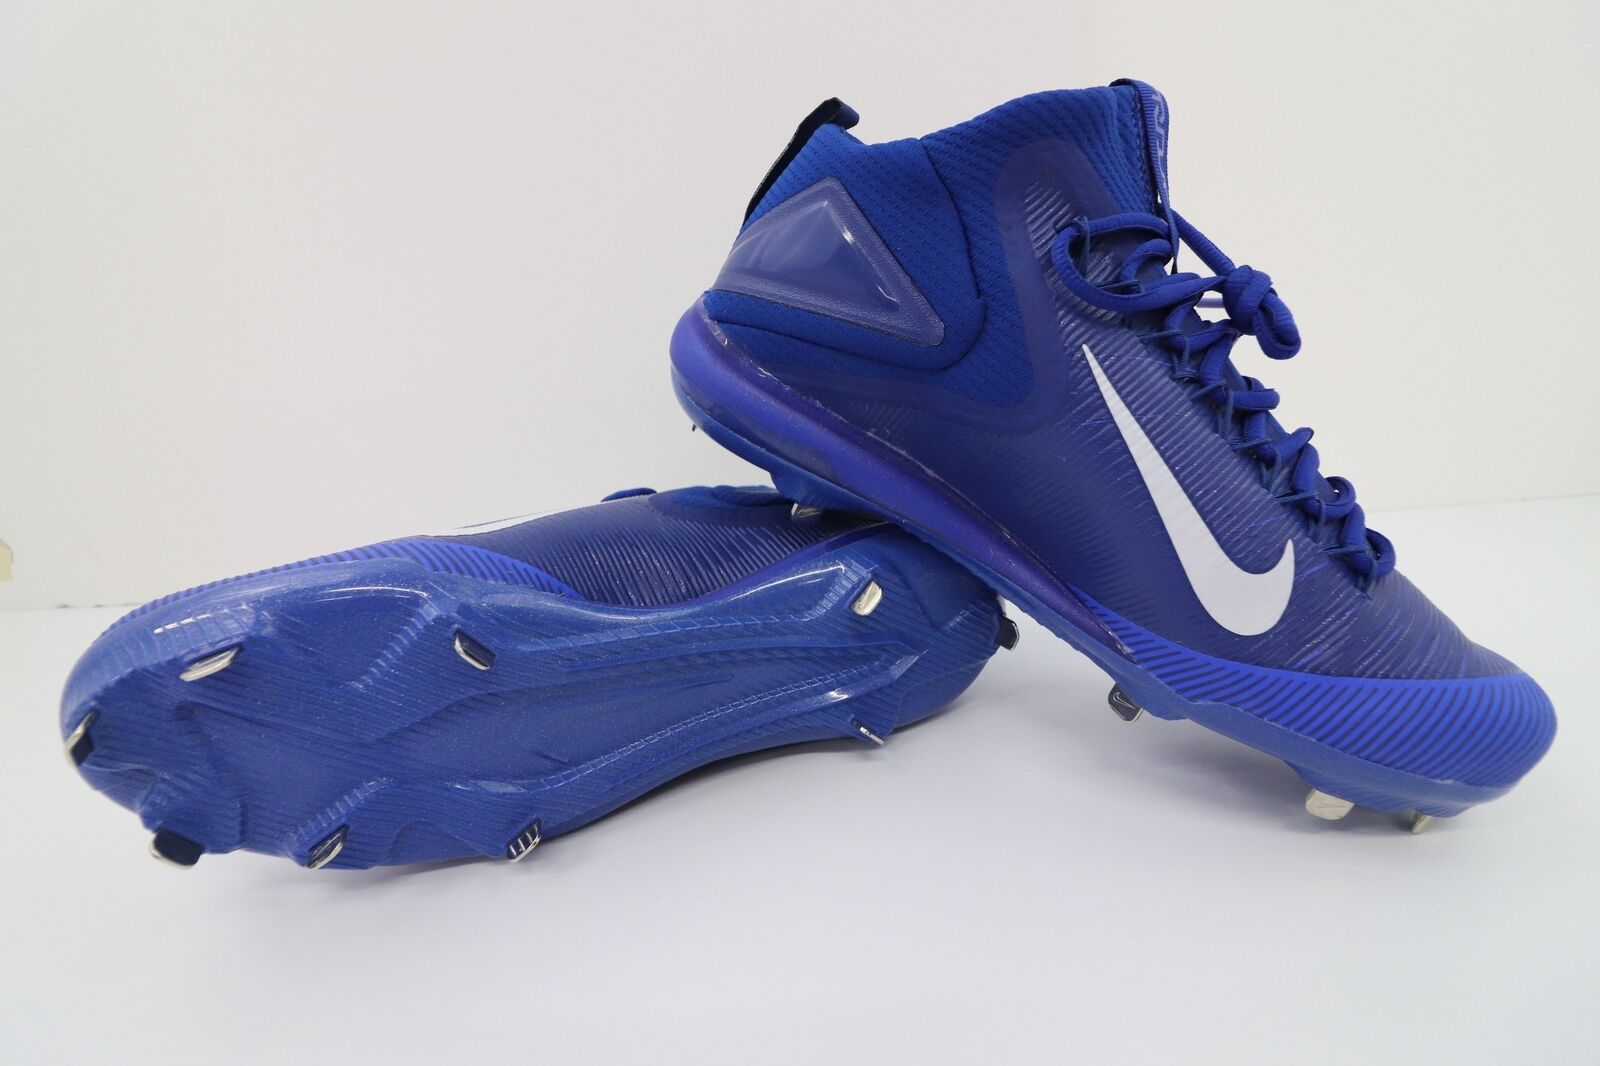 Wild casual shoes New Nike Zoom Cleats Mike Trout 27 Blue Mens Comfortable